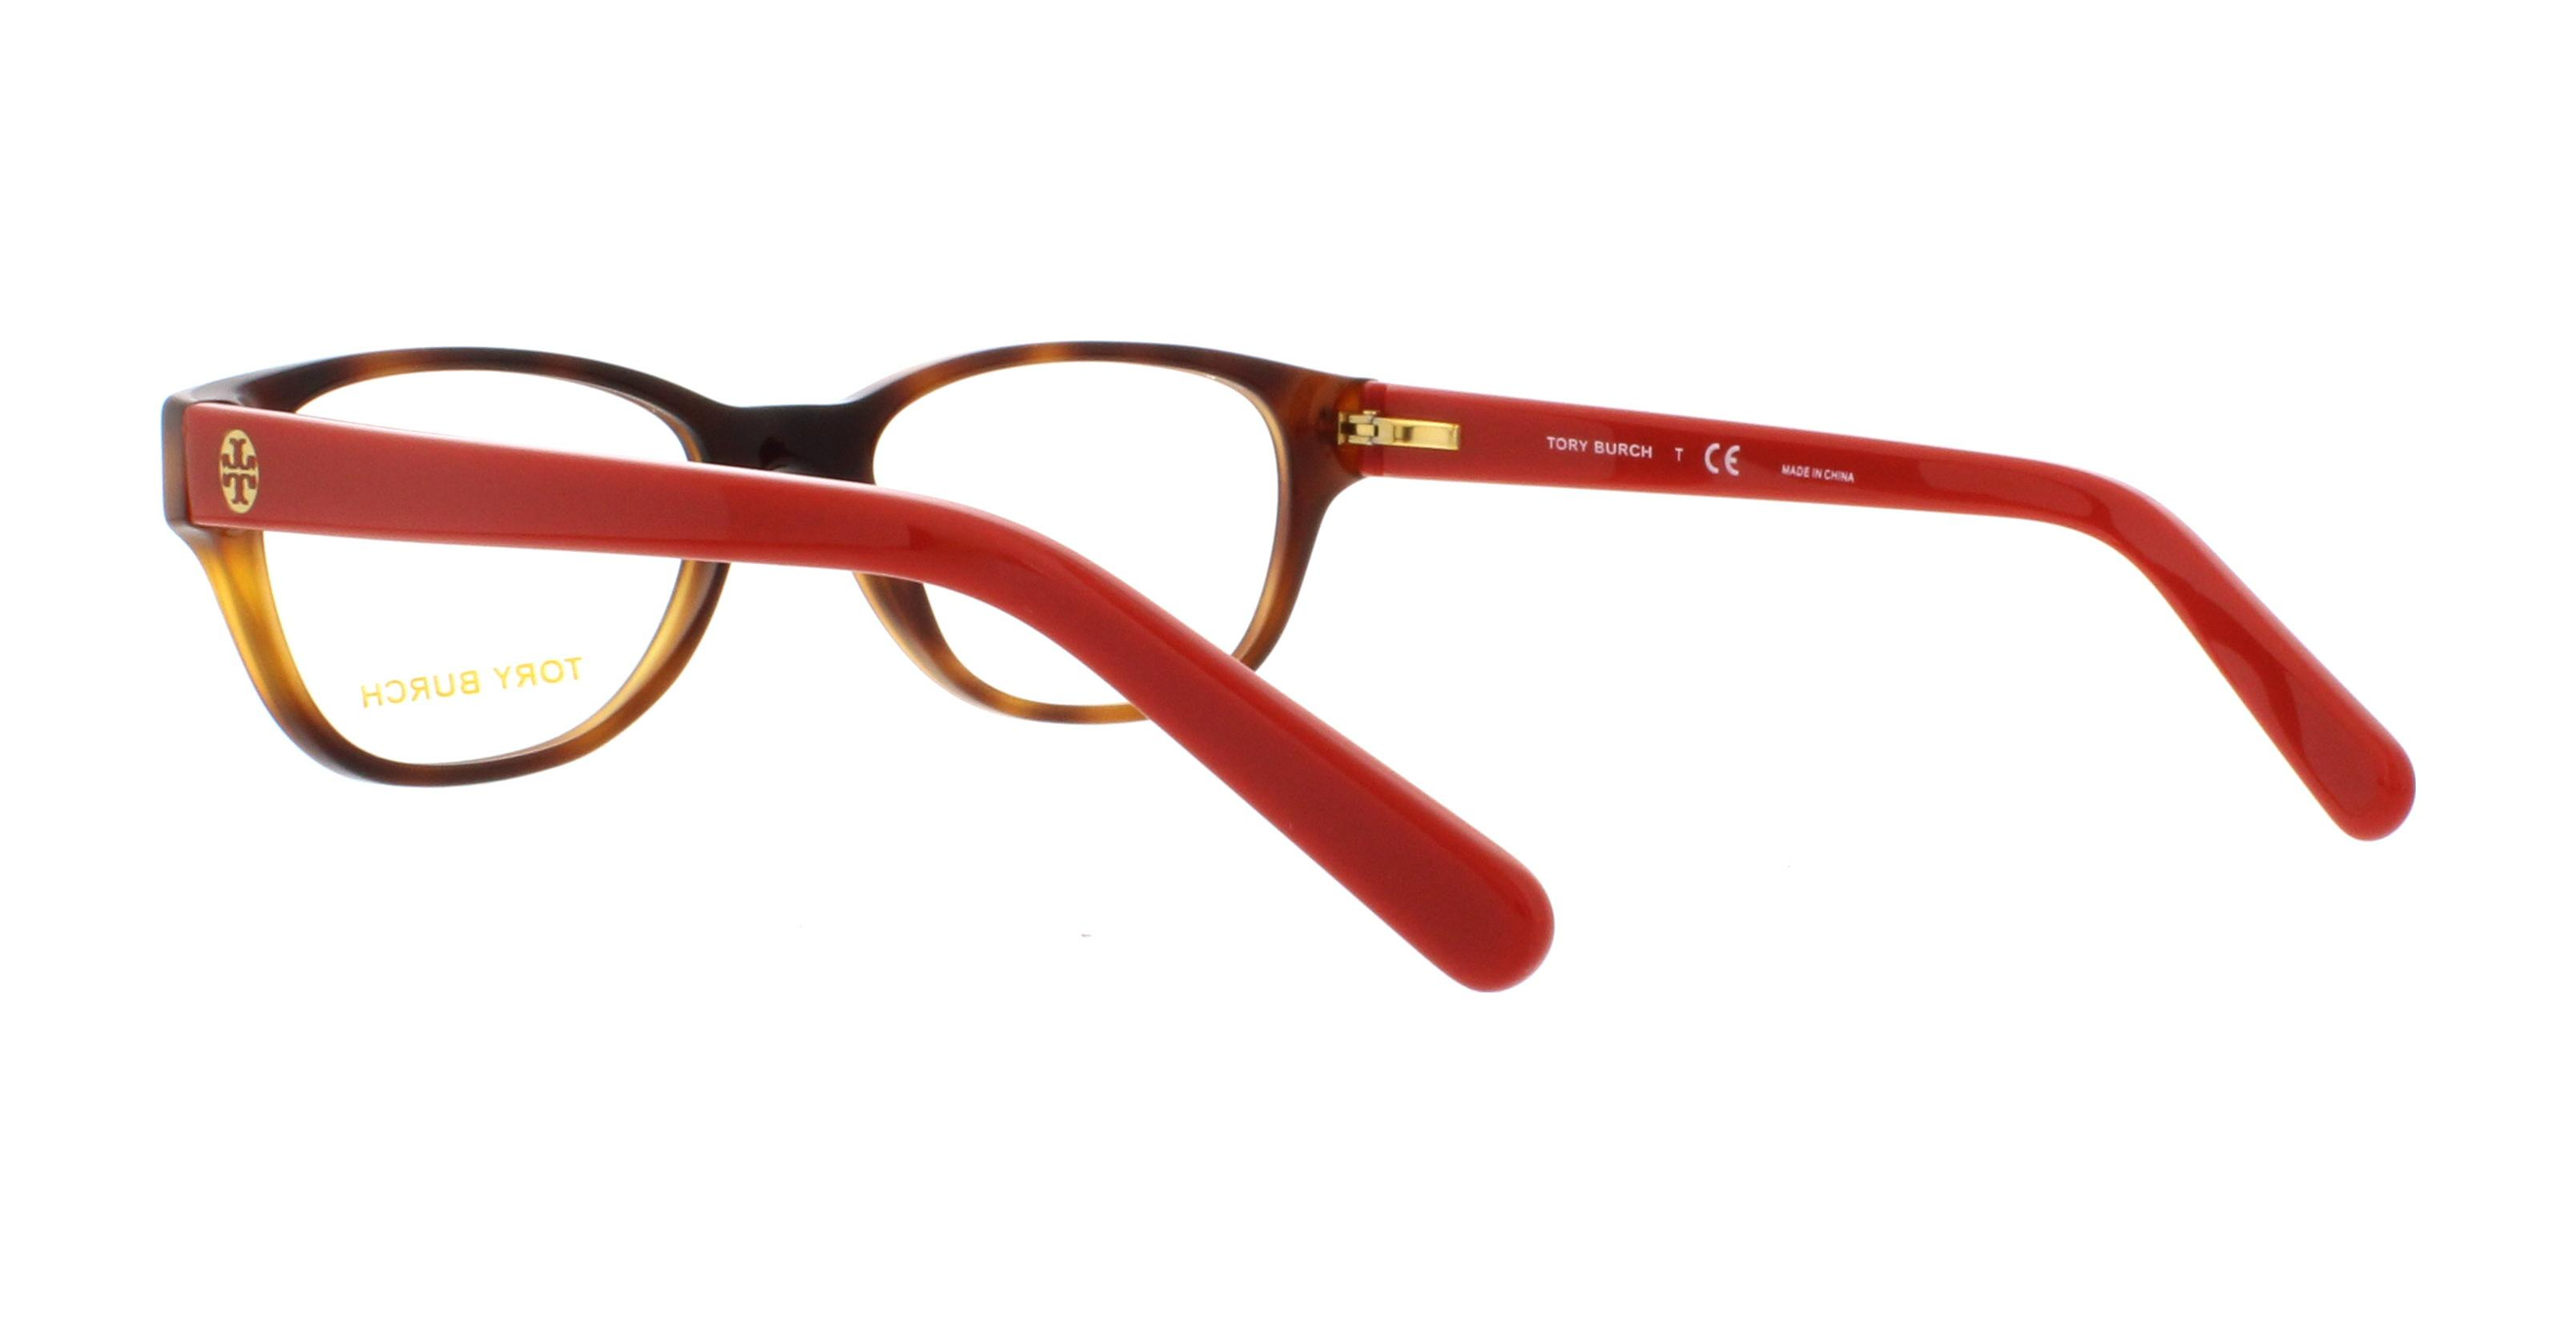 dba7389bb2 Designer Frames Outlet. Tory Burch TY2031